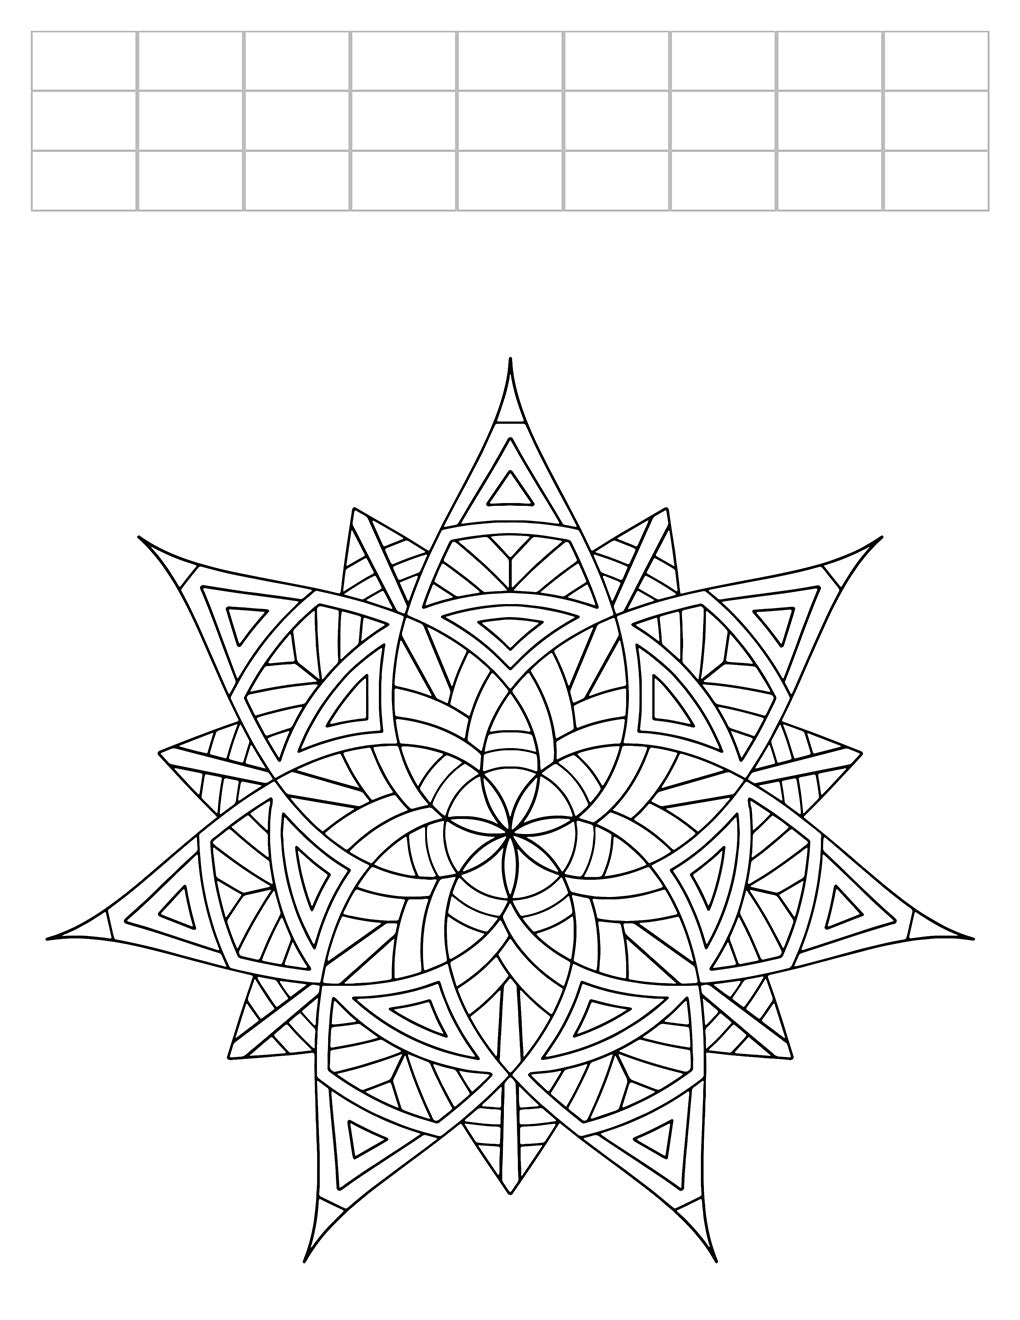 Lucky Seven - Geometric Coloring Worksheet - 8.5